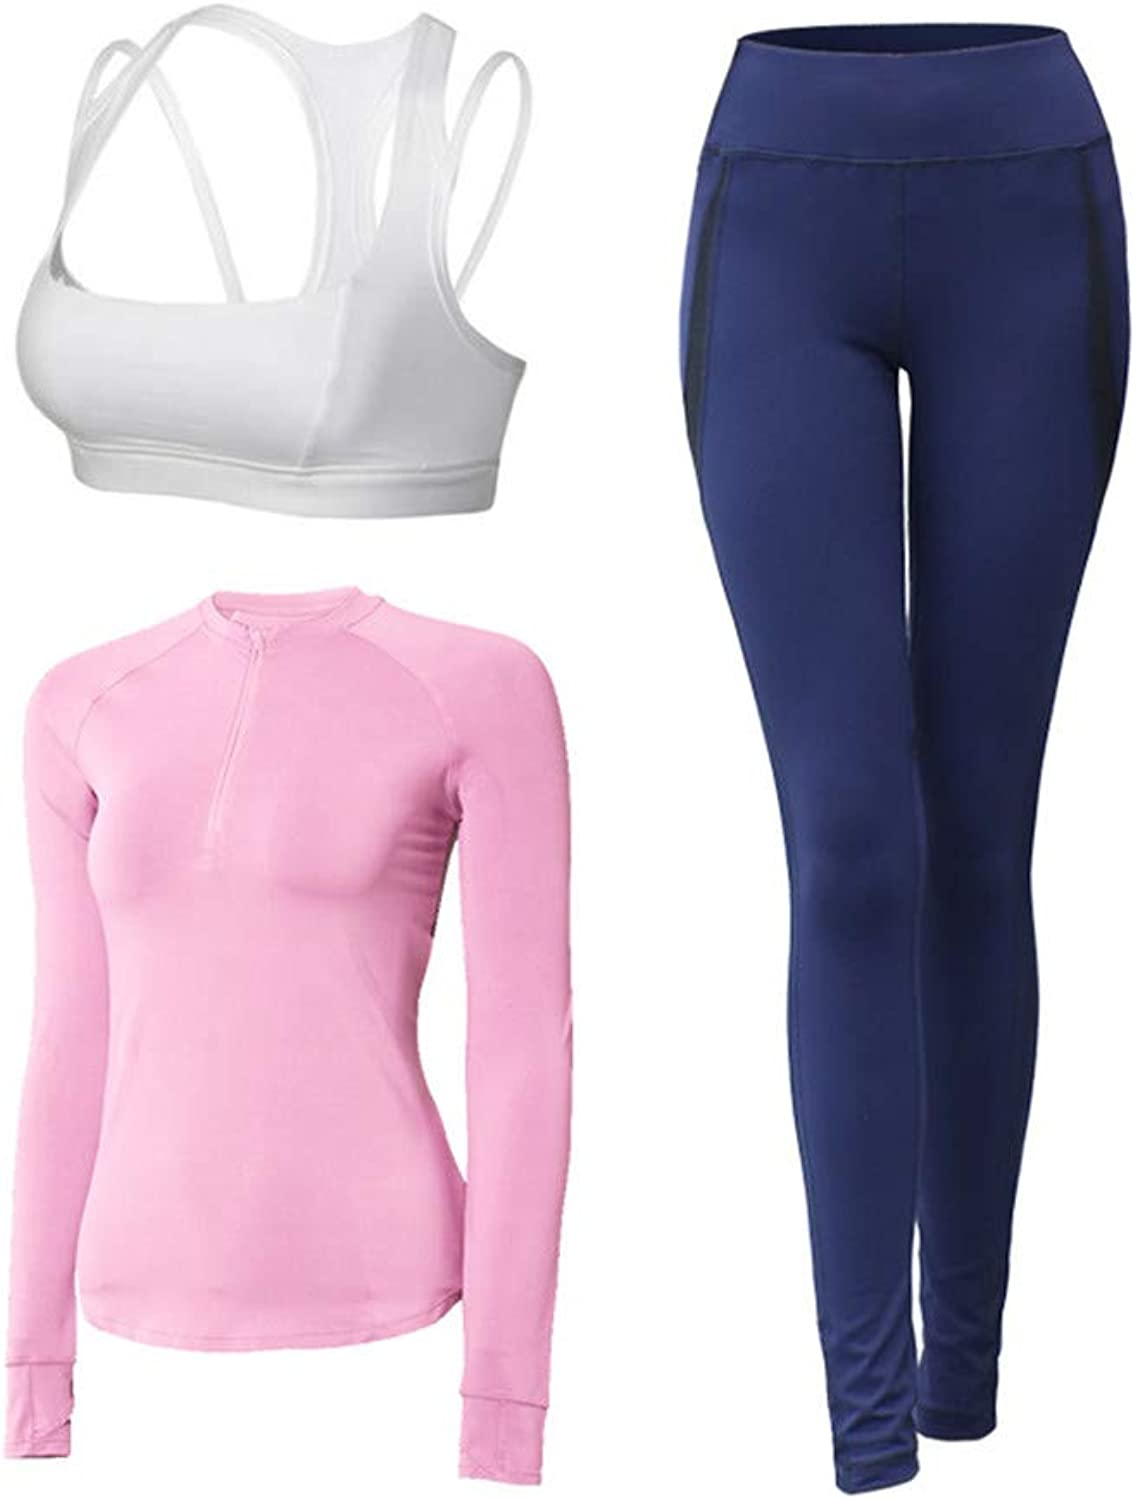 Ladies Fitness Training Set Outfit Women's Sports Suit 3pc Sets Bra +Long Sleeve + Leggings Elasticity Fitness Suits for Yoga Running Activities for Gym Running Yoga Gym (color   Pink, Size   XL)